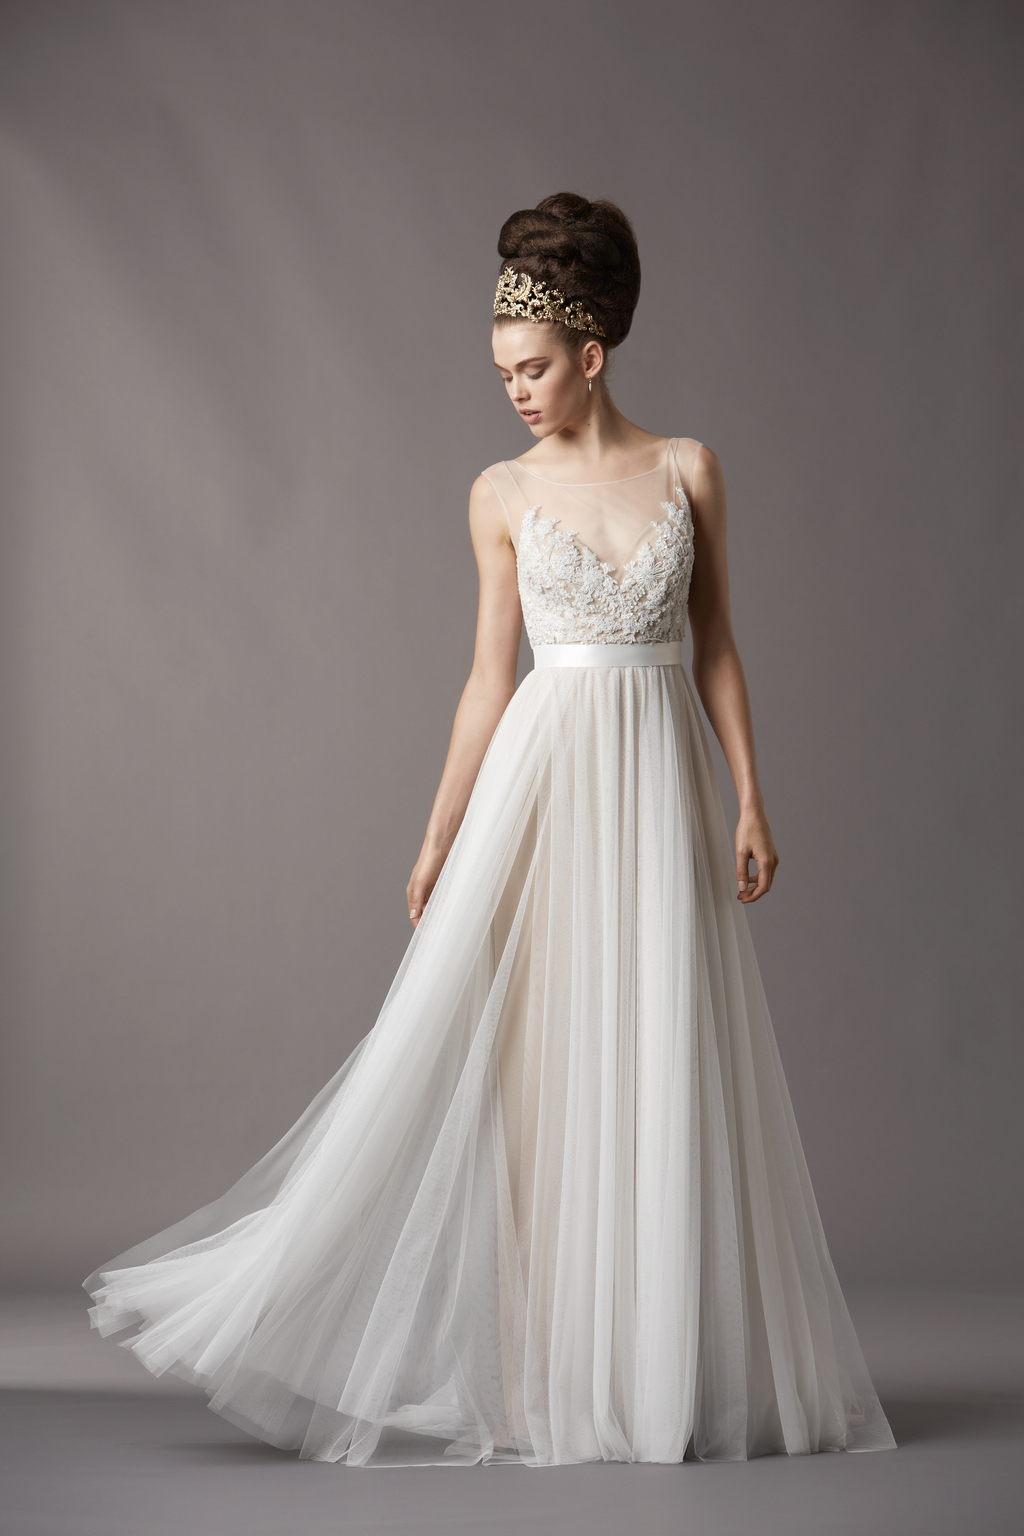 Watters bridal gowns fall 2013 wedding dress 4061b for Dresses for fall wedding